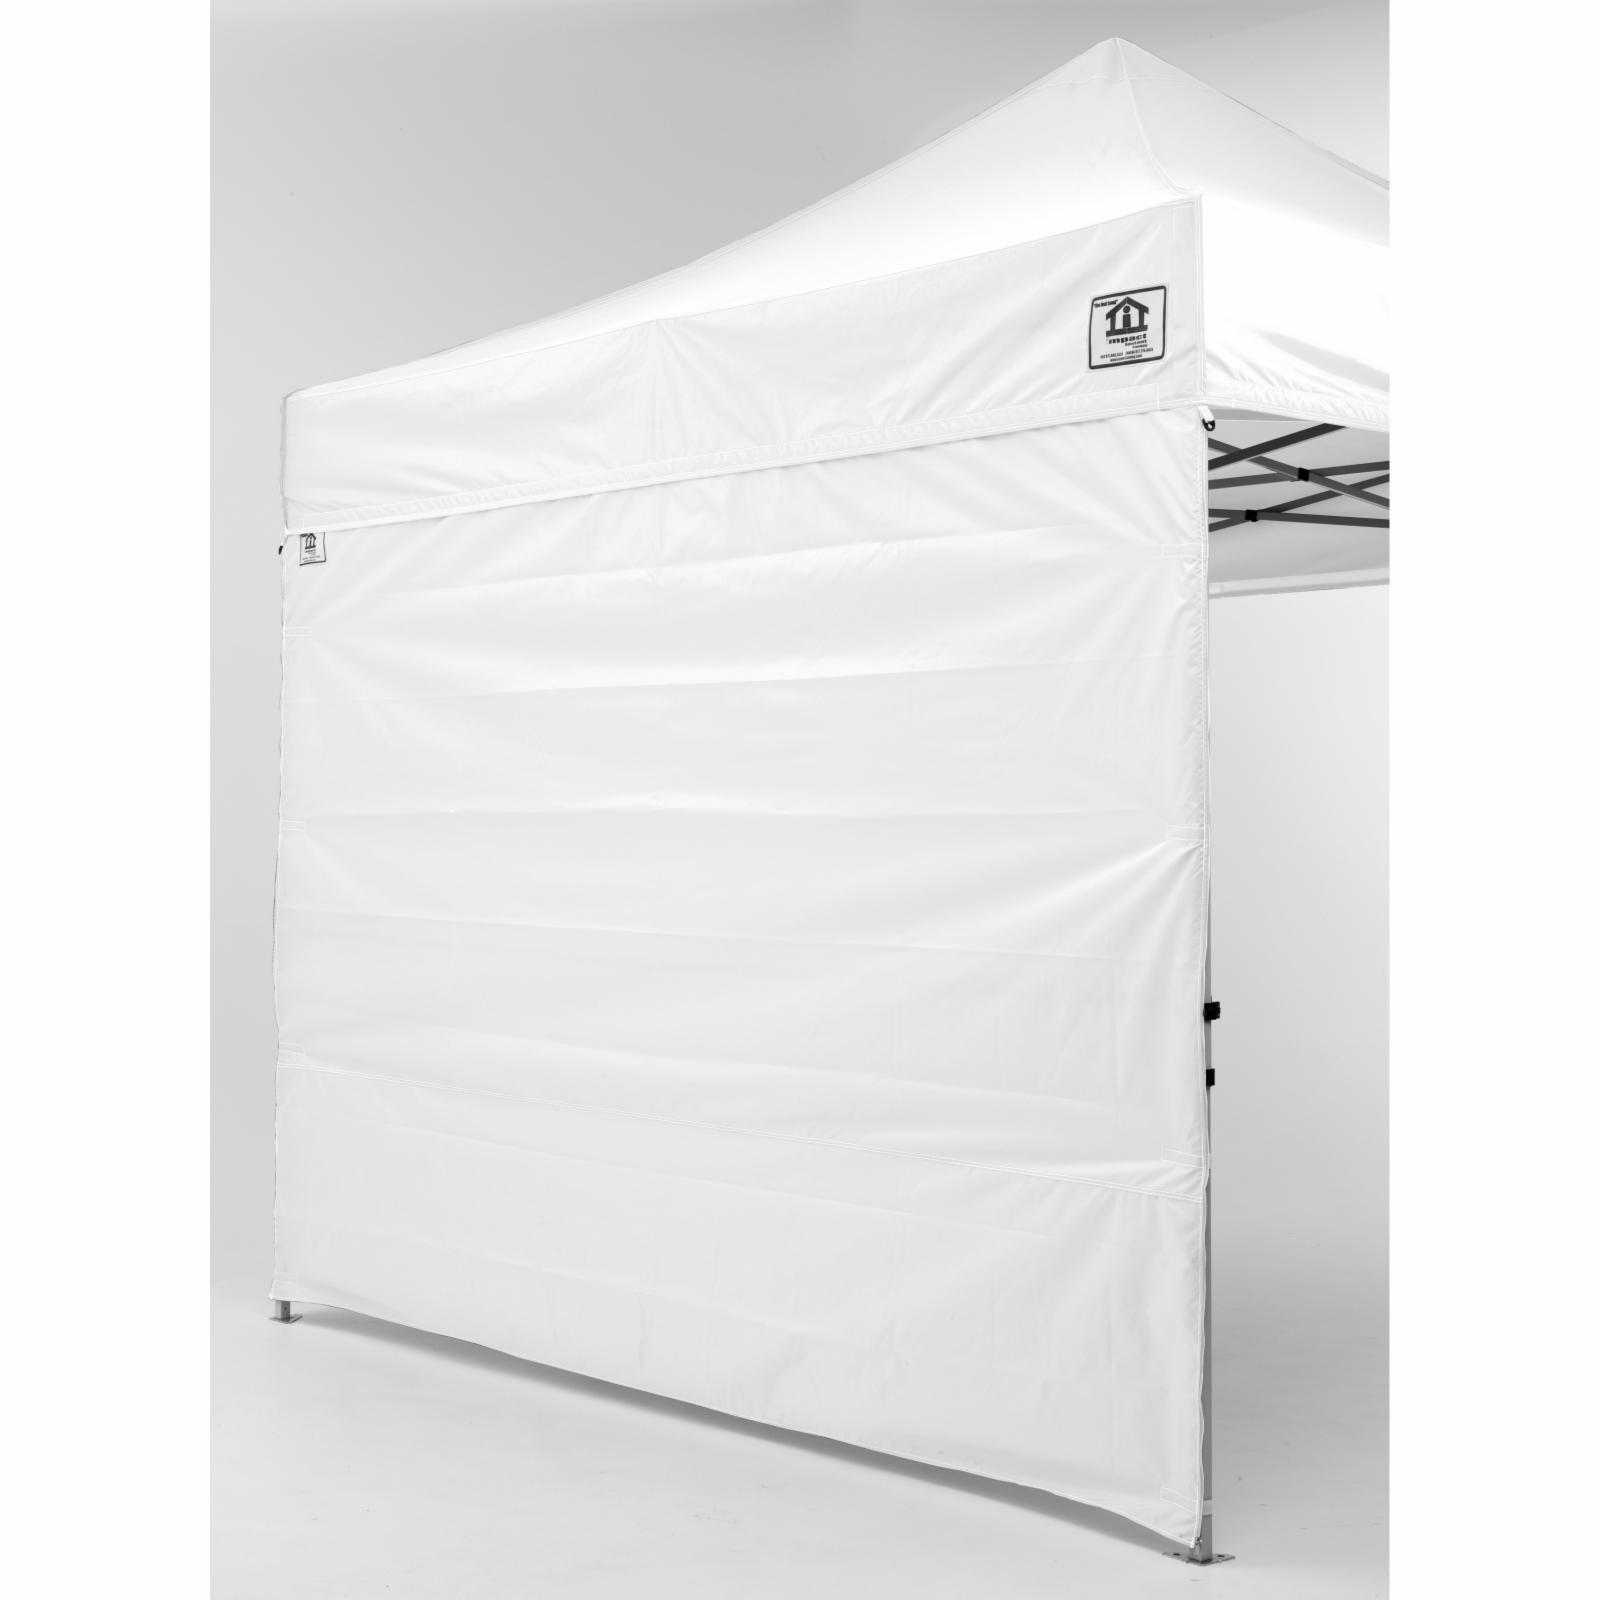 Impact Canopy 10 x 10 ft. EZ Pop Up Canopy with Sidewalls...